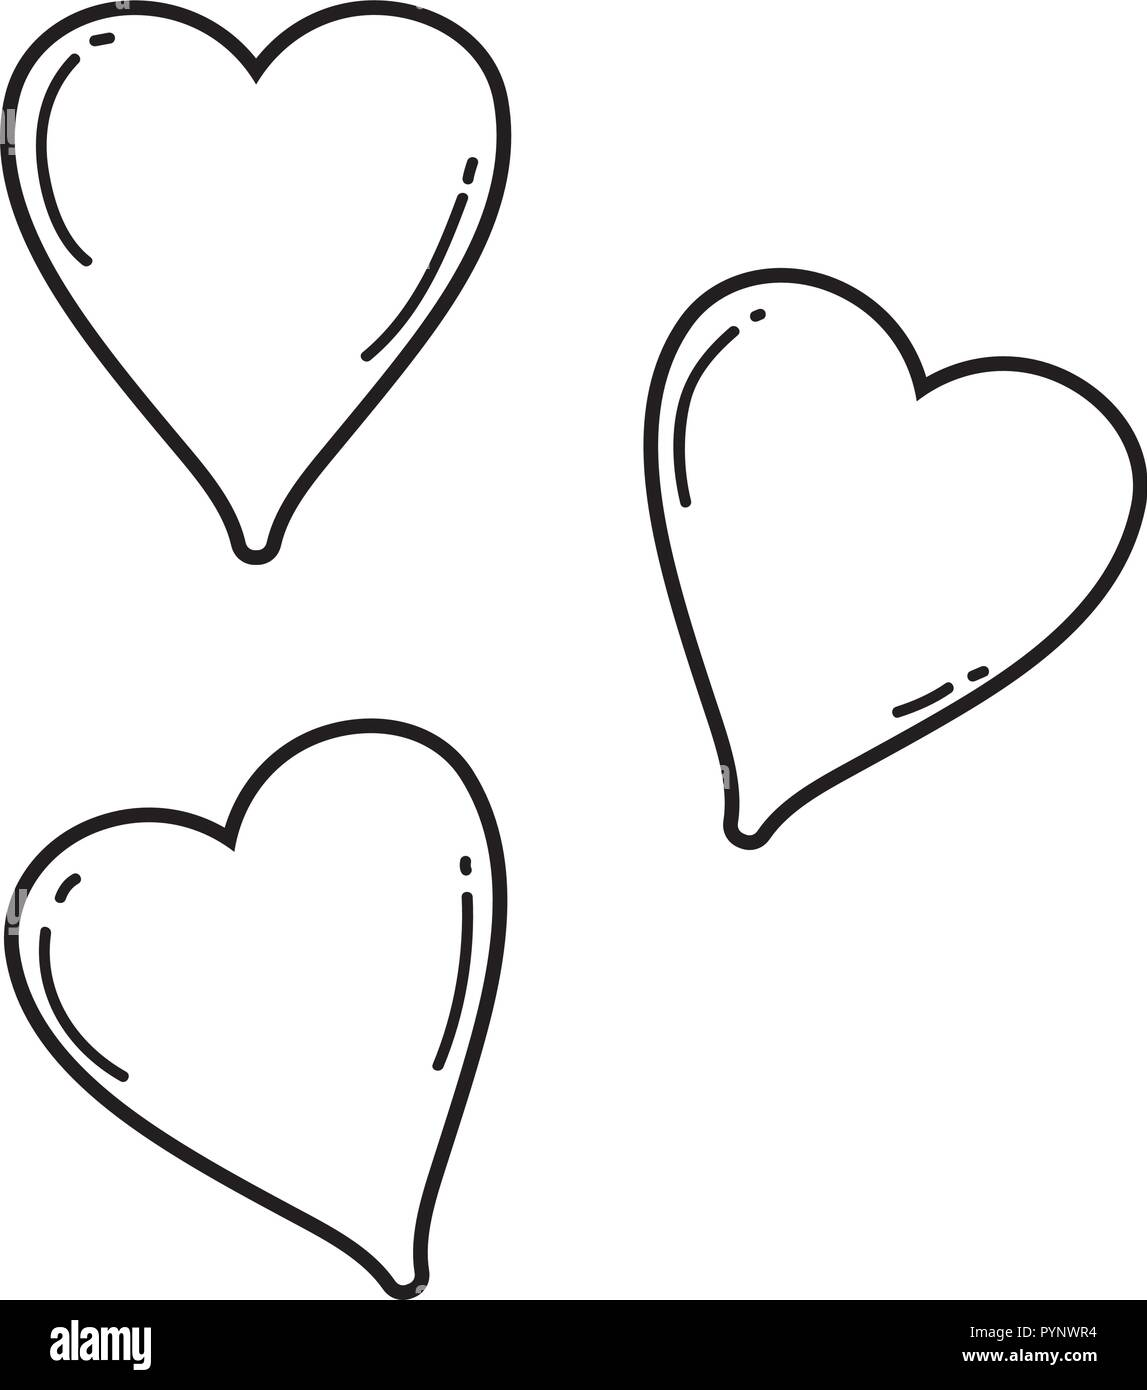 Cute hearts drawings black and white